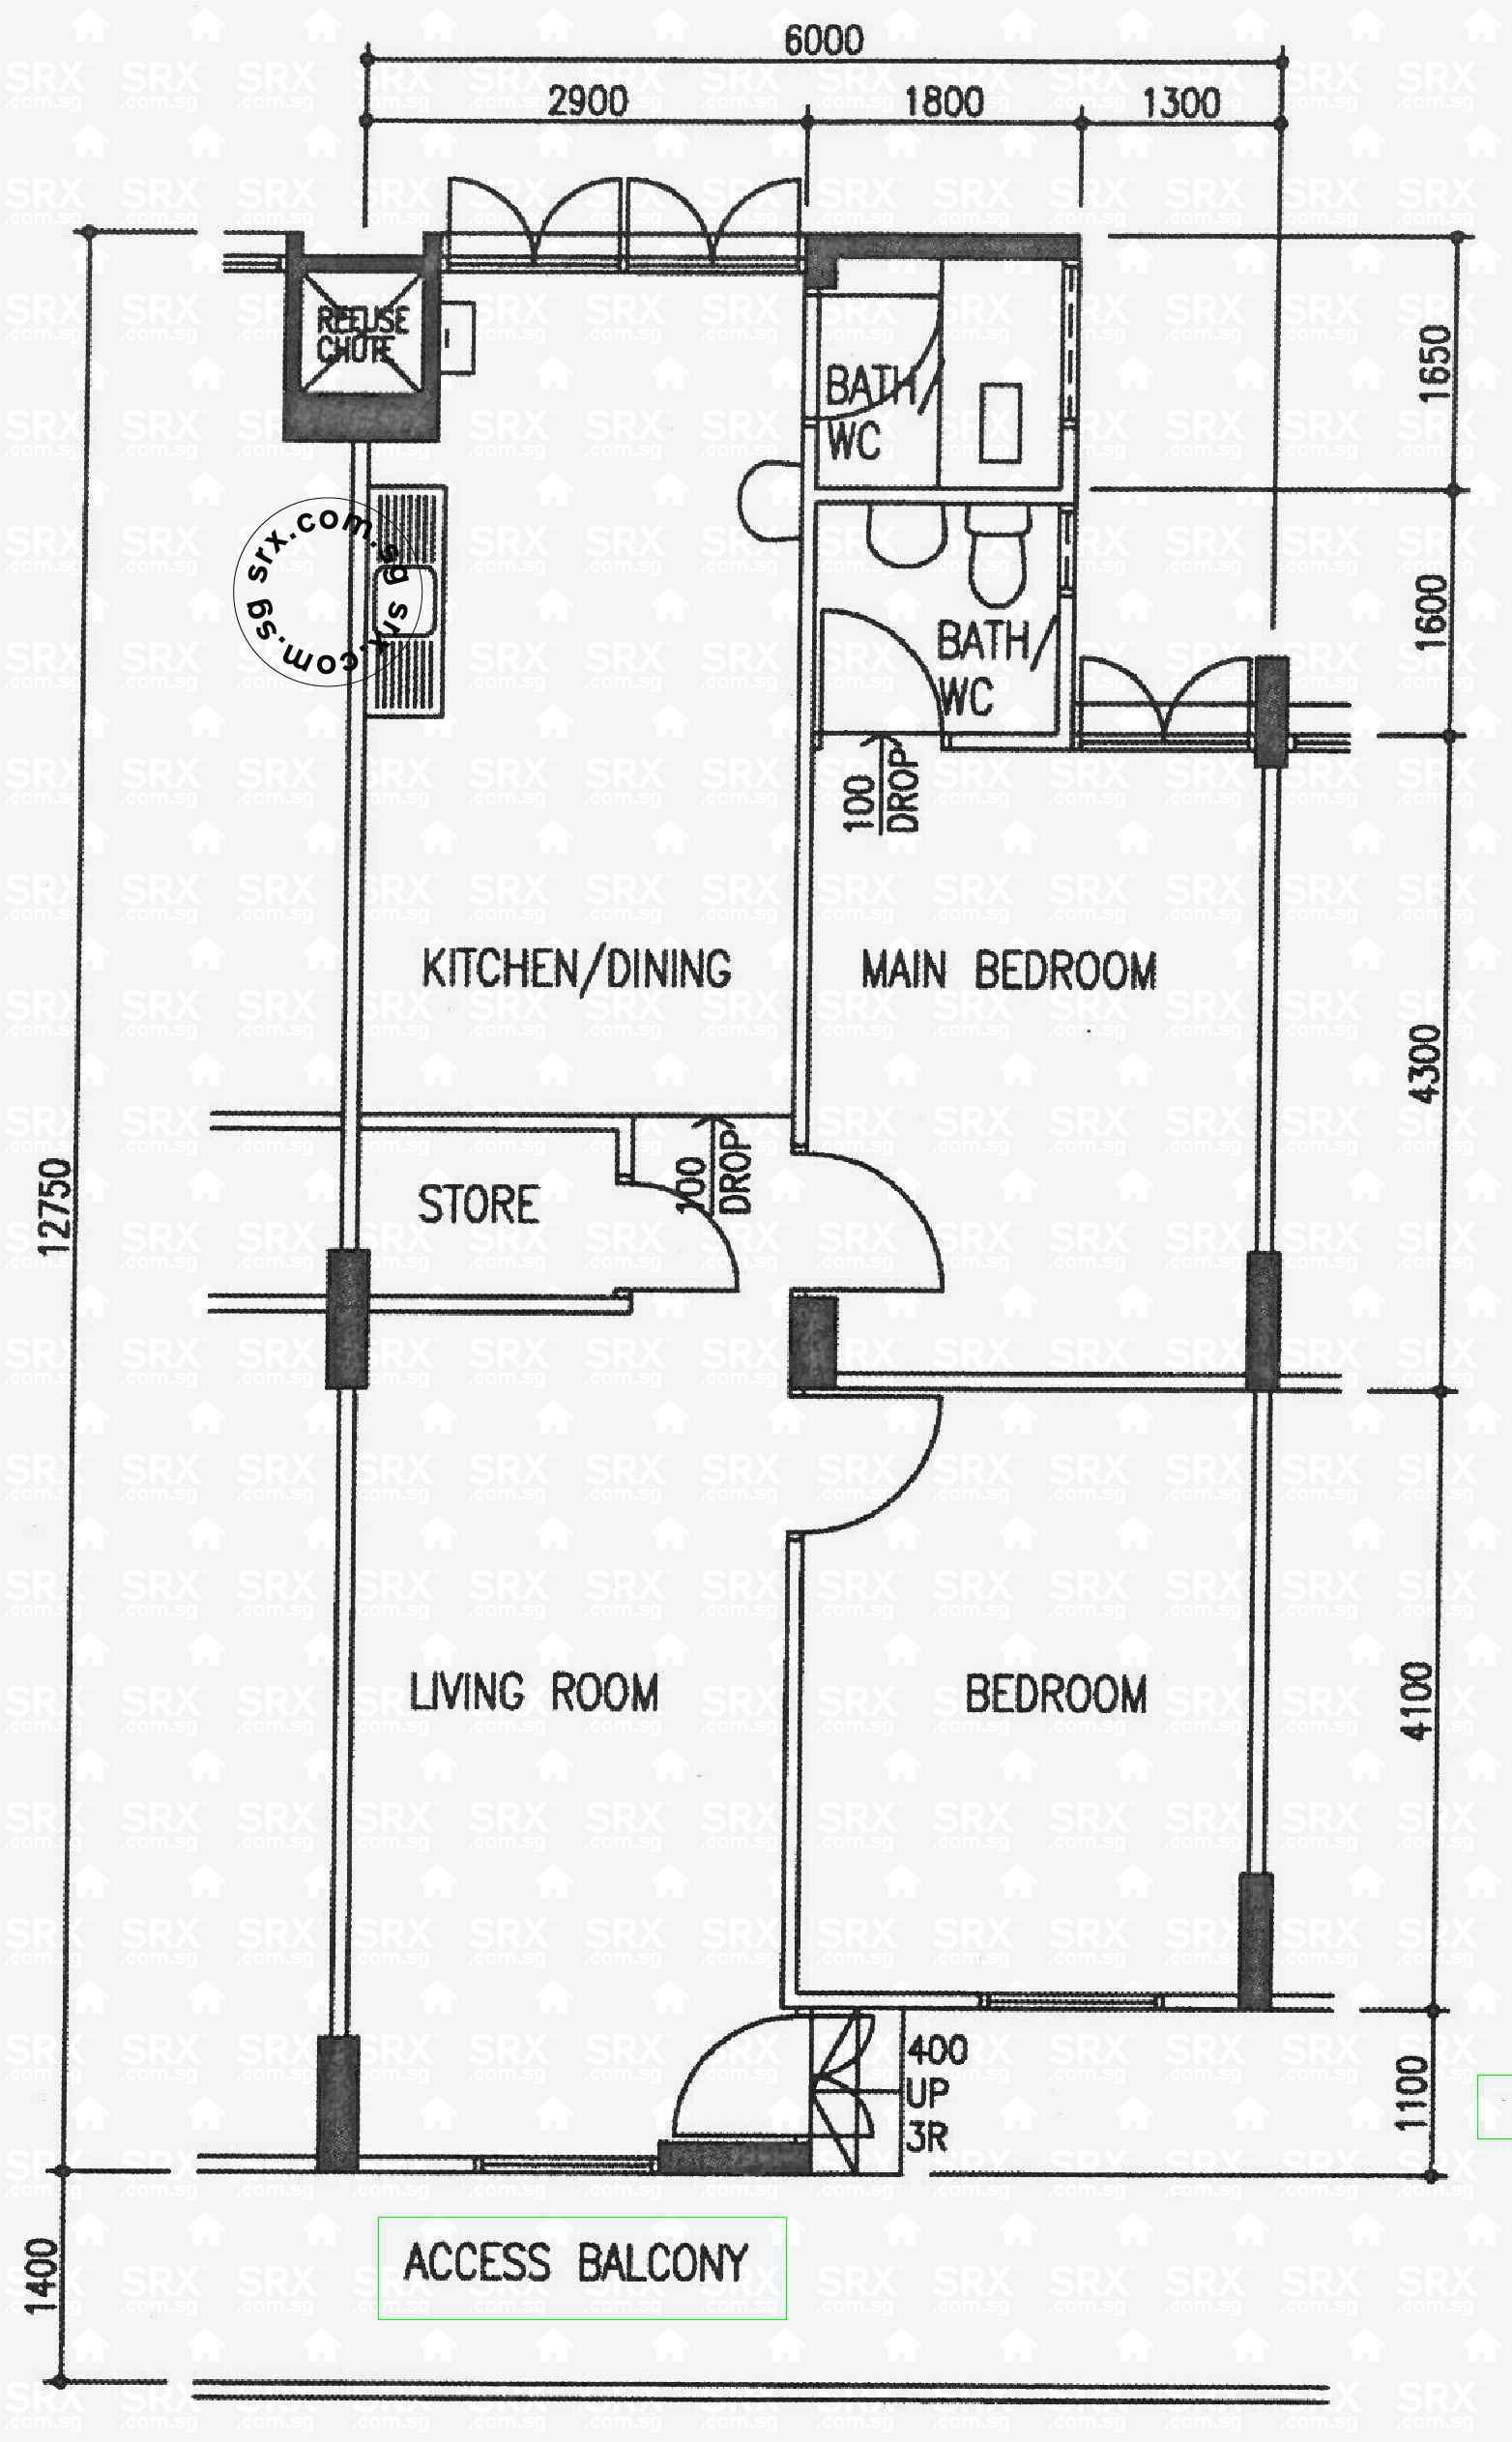 3 room flat floor plan hdb thefloors co for 3 room flat floor plan